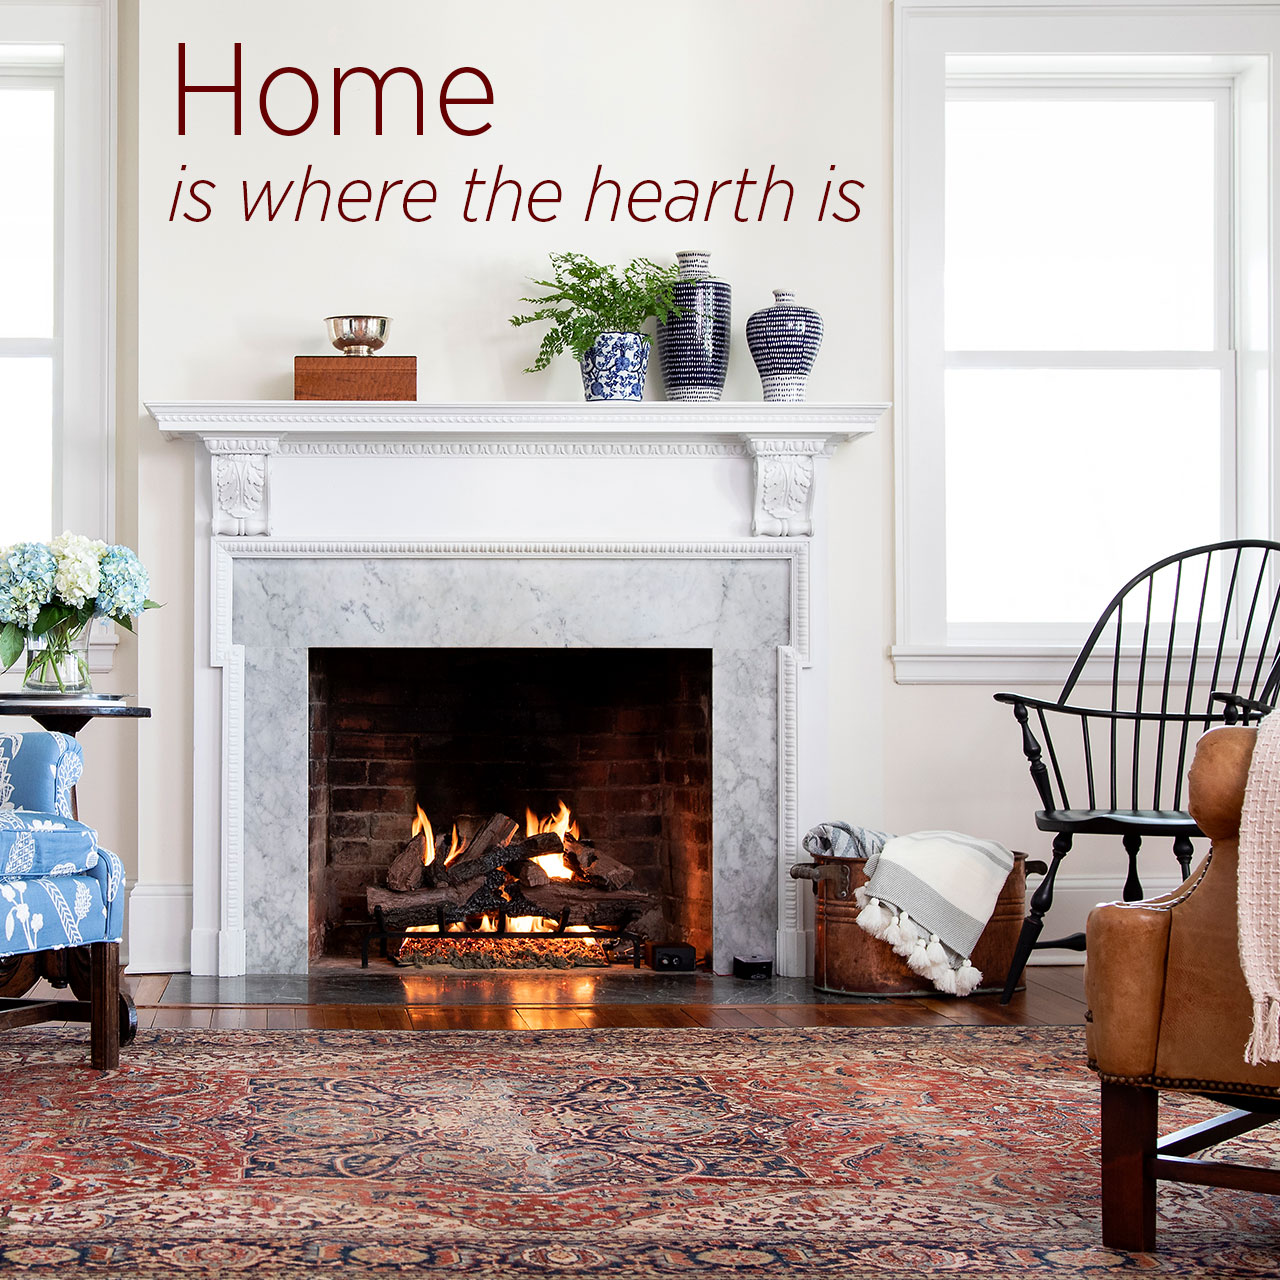 Home is where the hearth is.